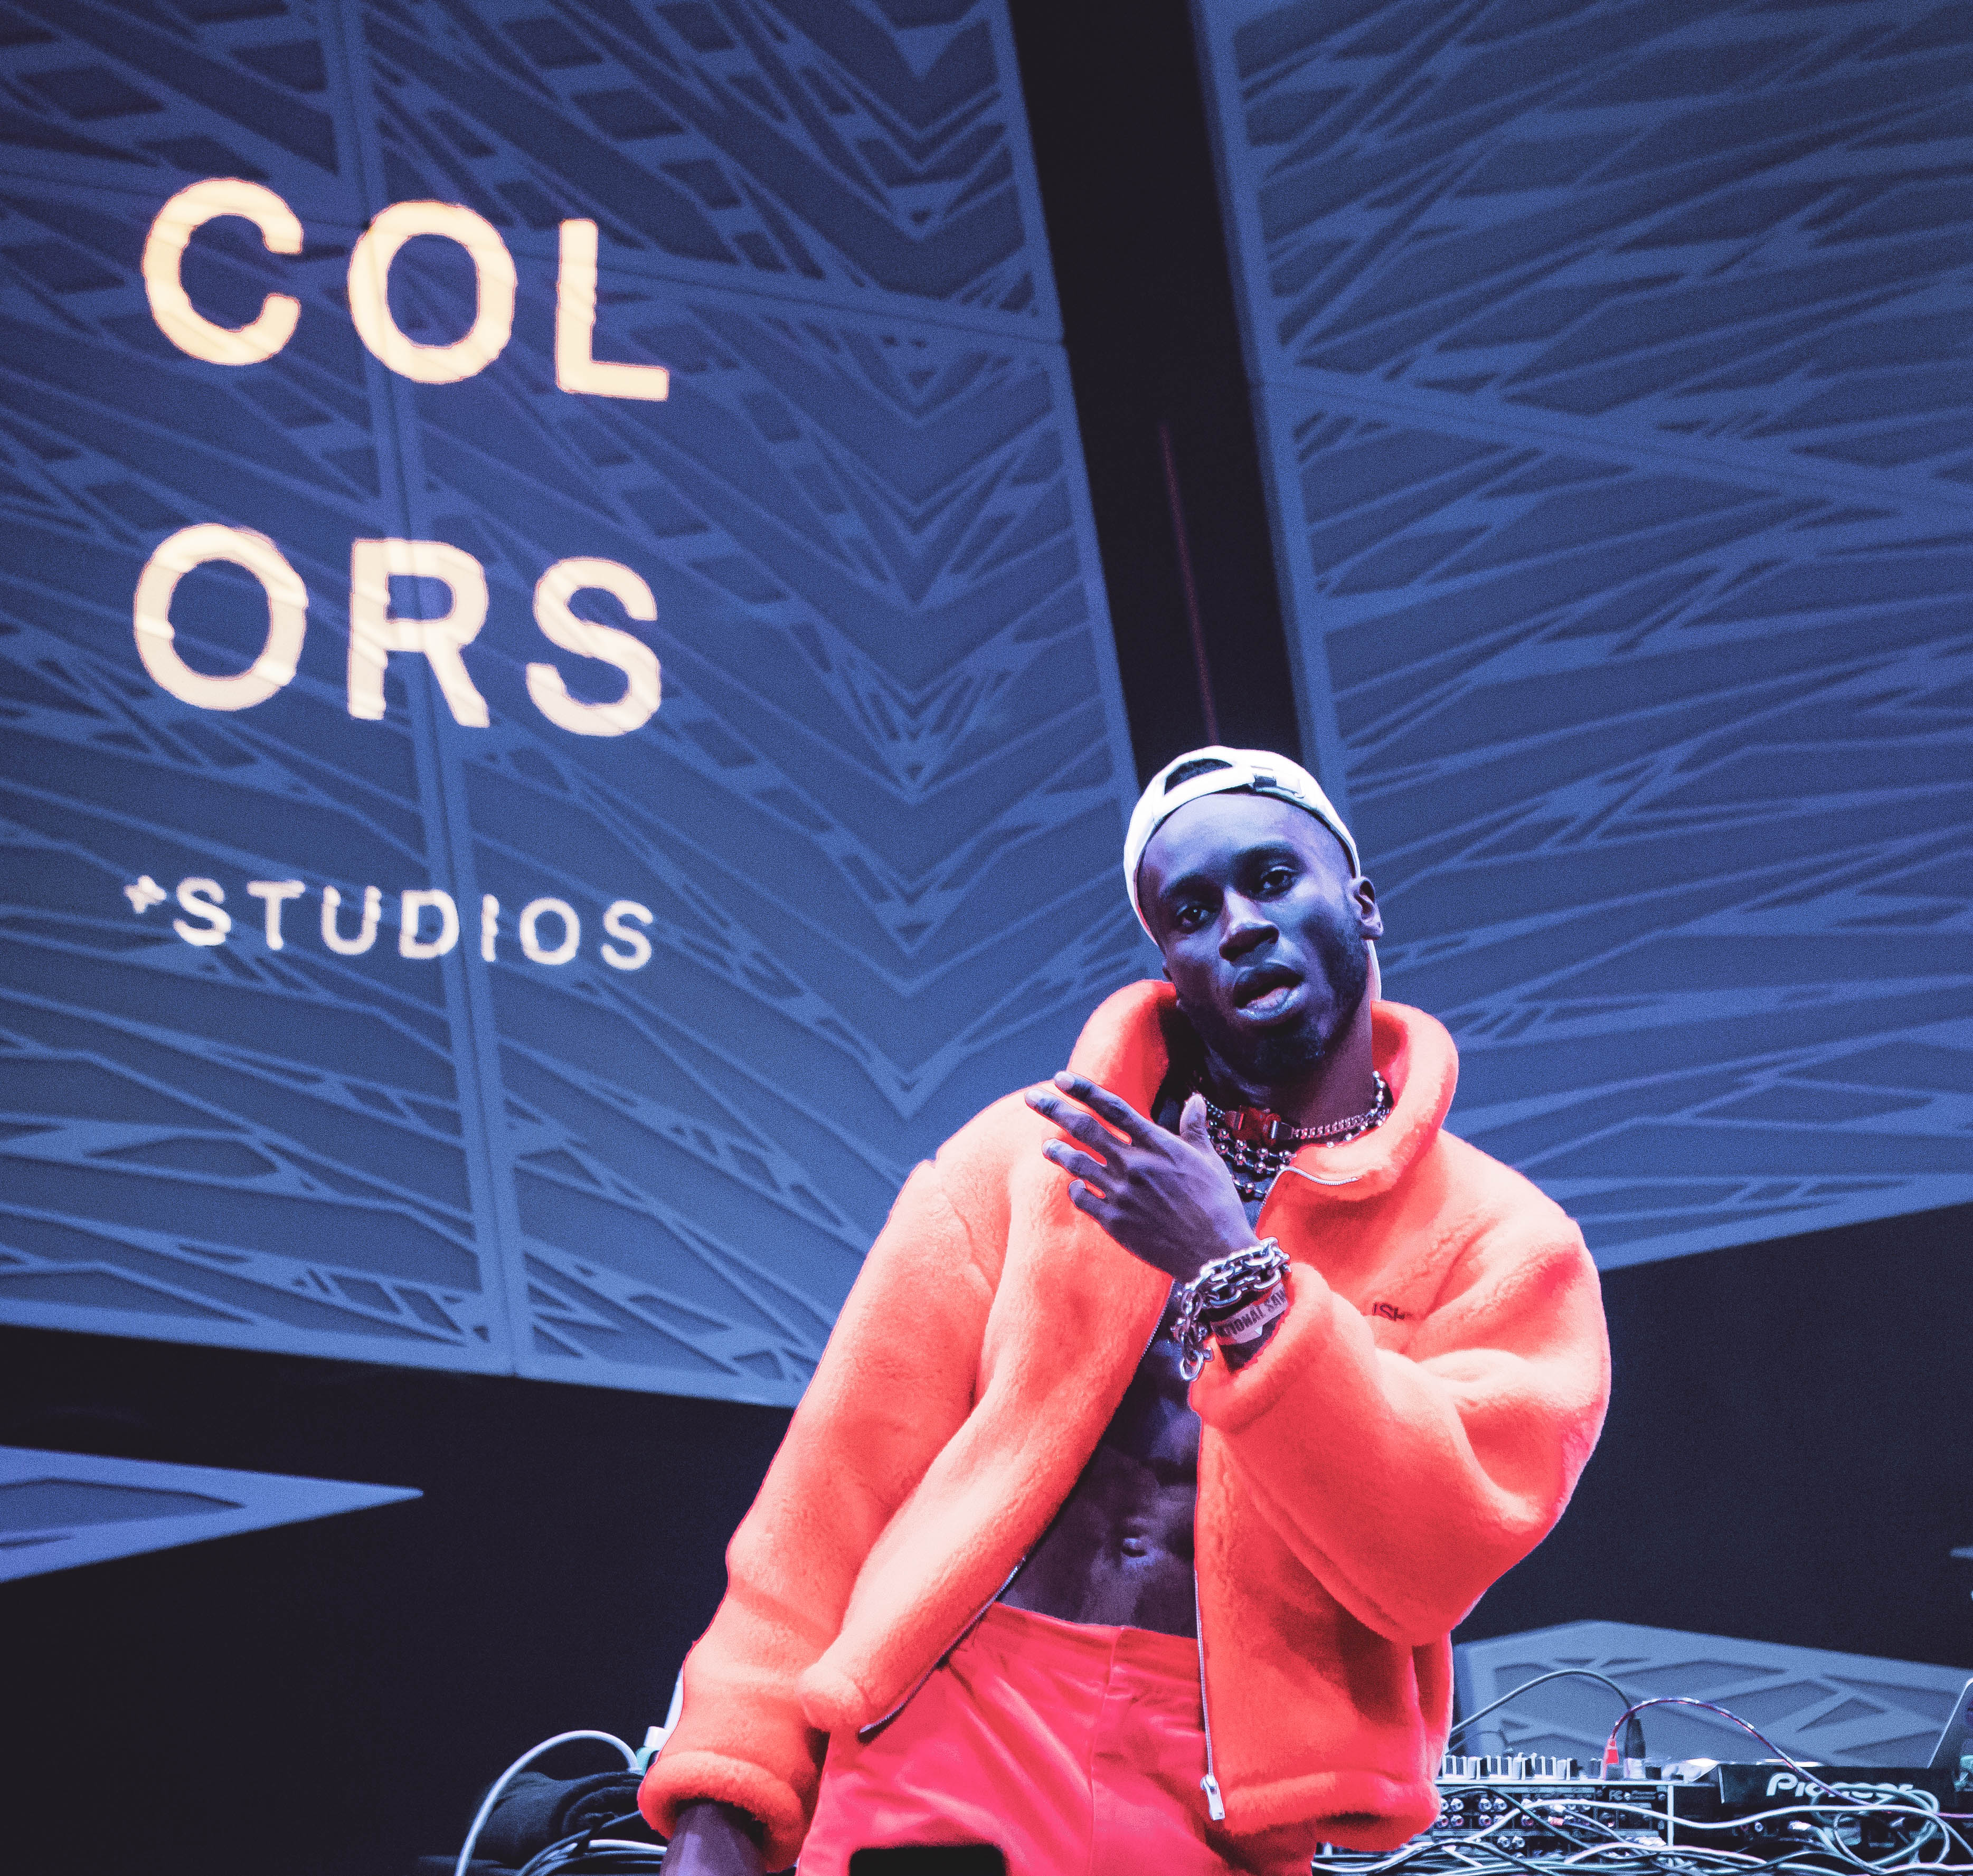 The rapper Kojey Radical at a COLORS Studios show at National Sawdust in Brooklyn in November.